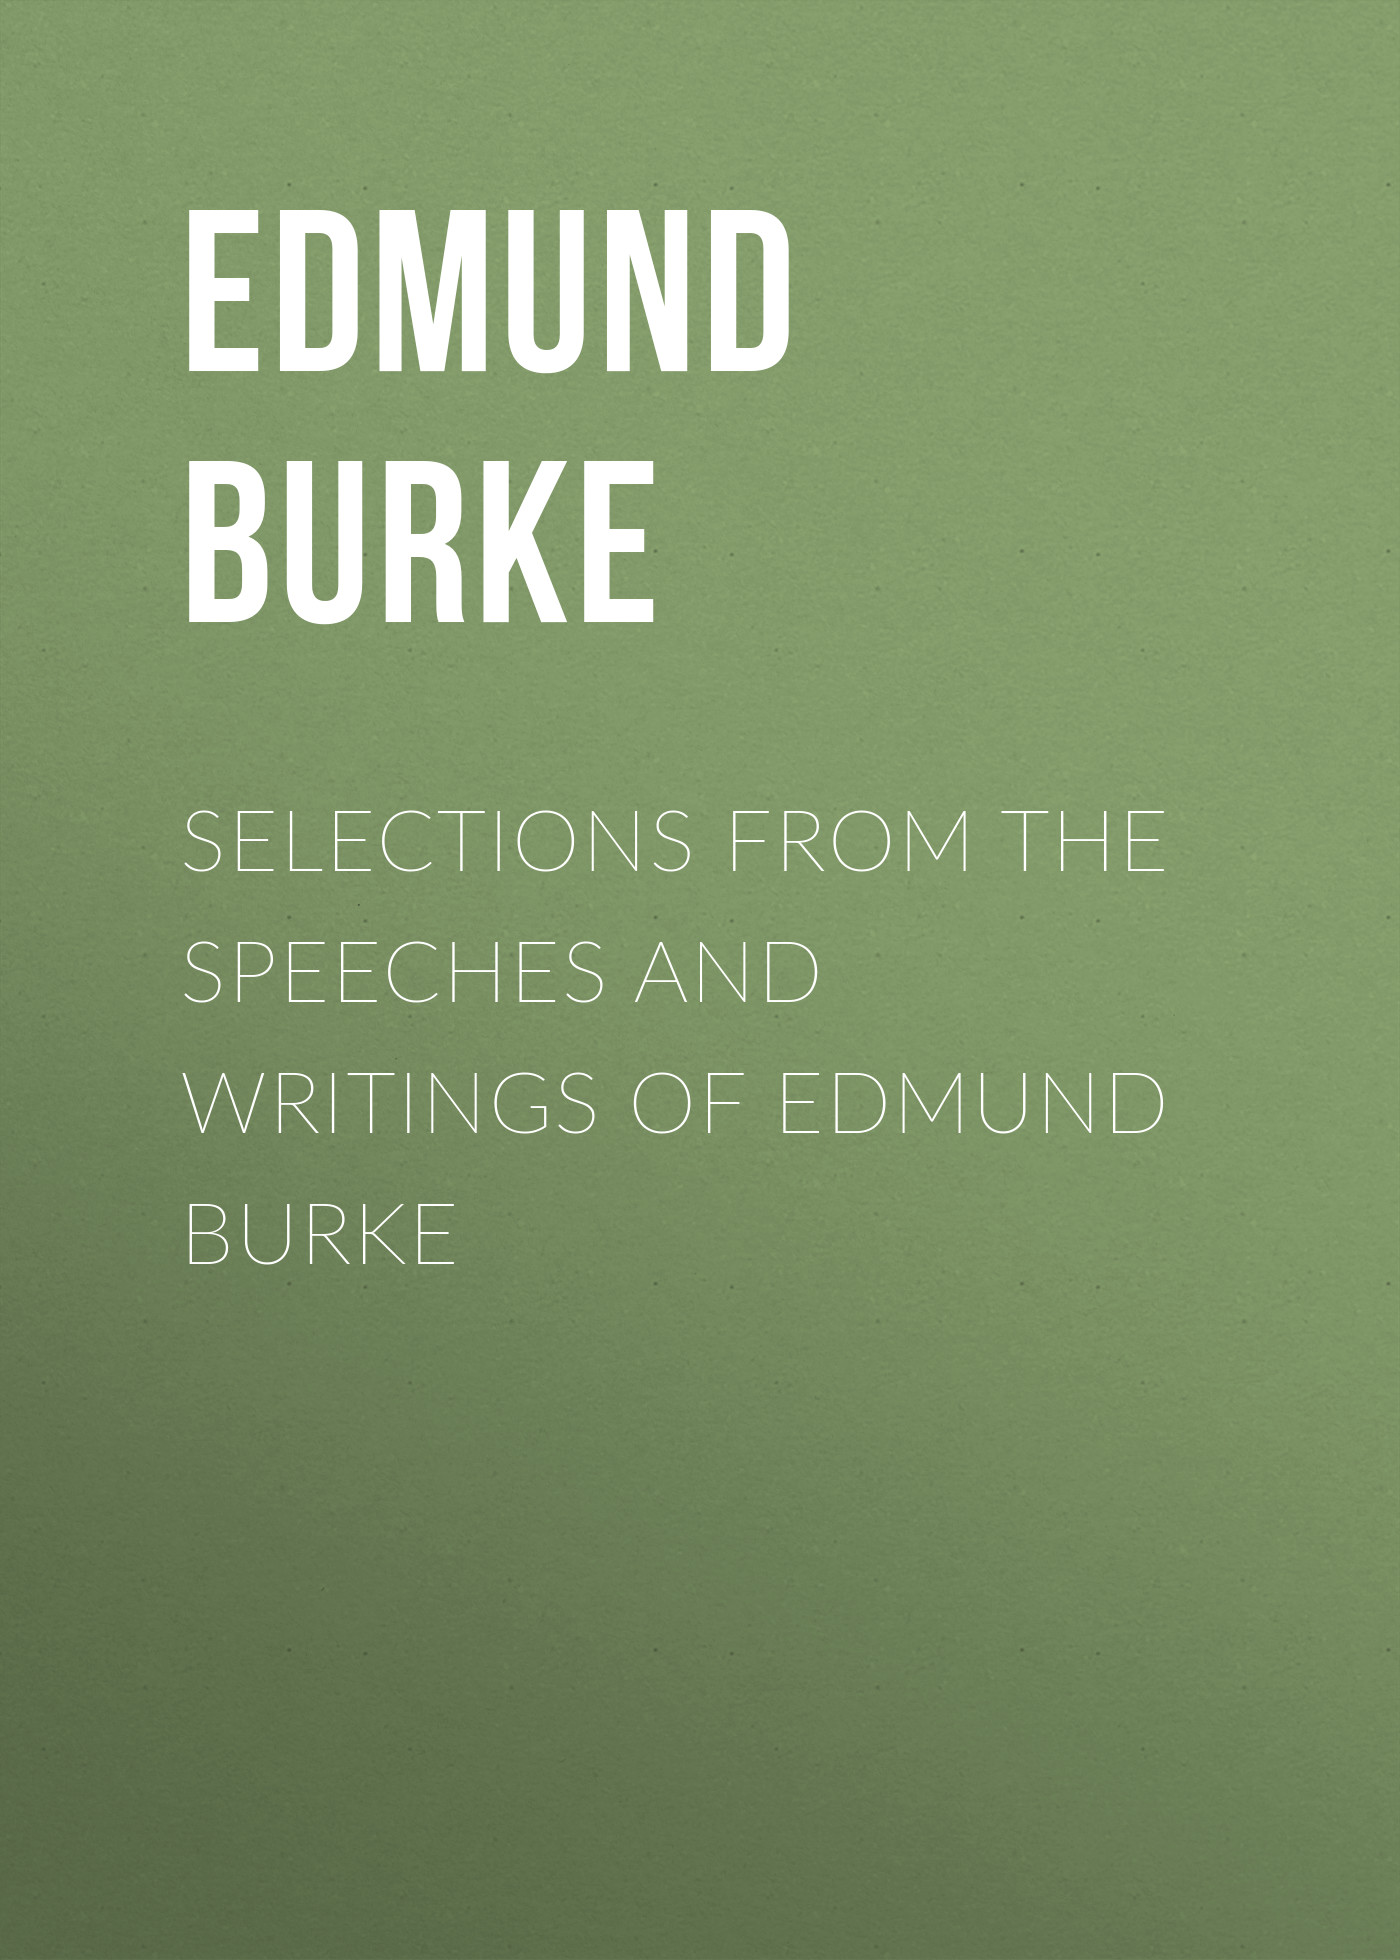 Edmund Burke Selections from the Speeches and Writings of Edmund Burke